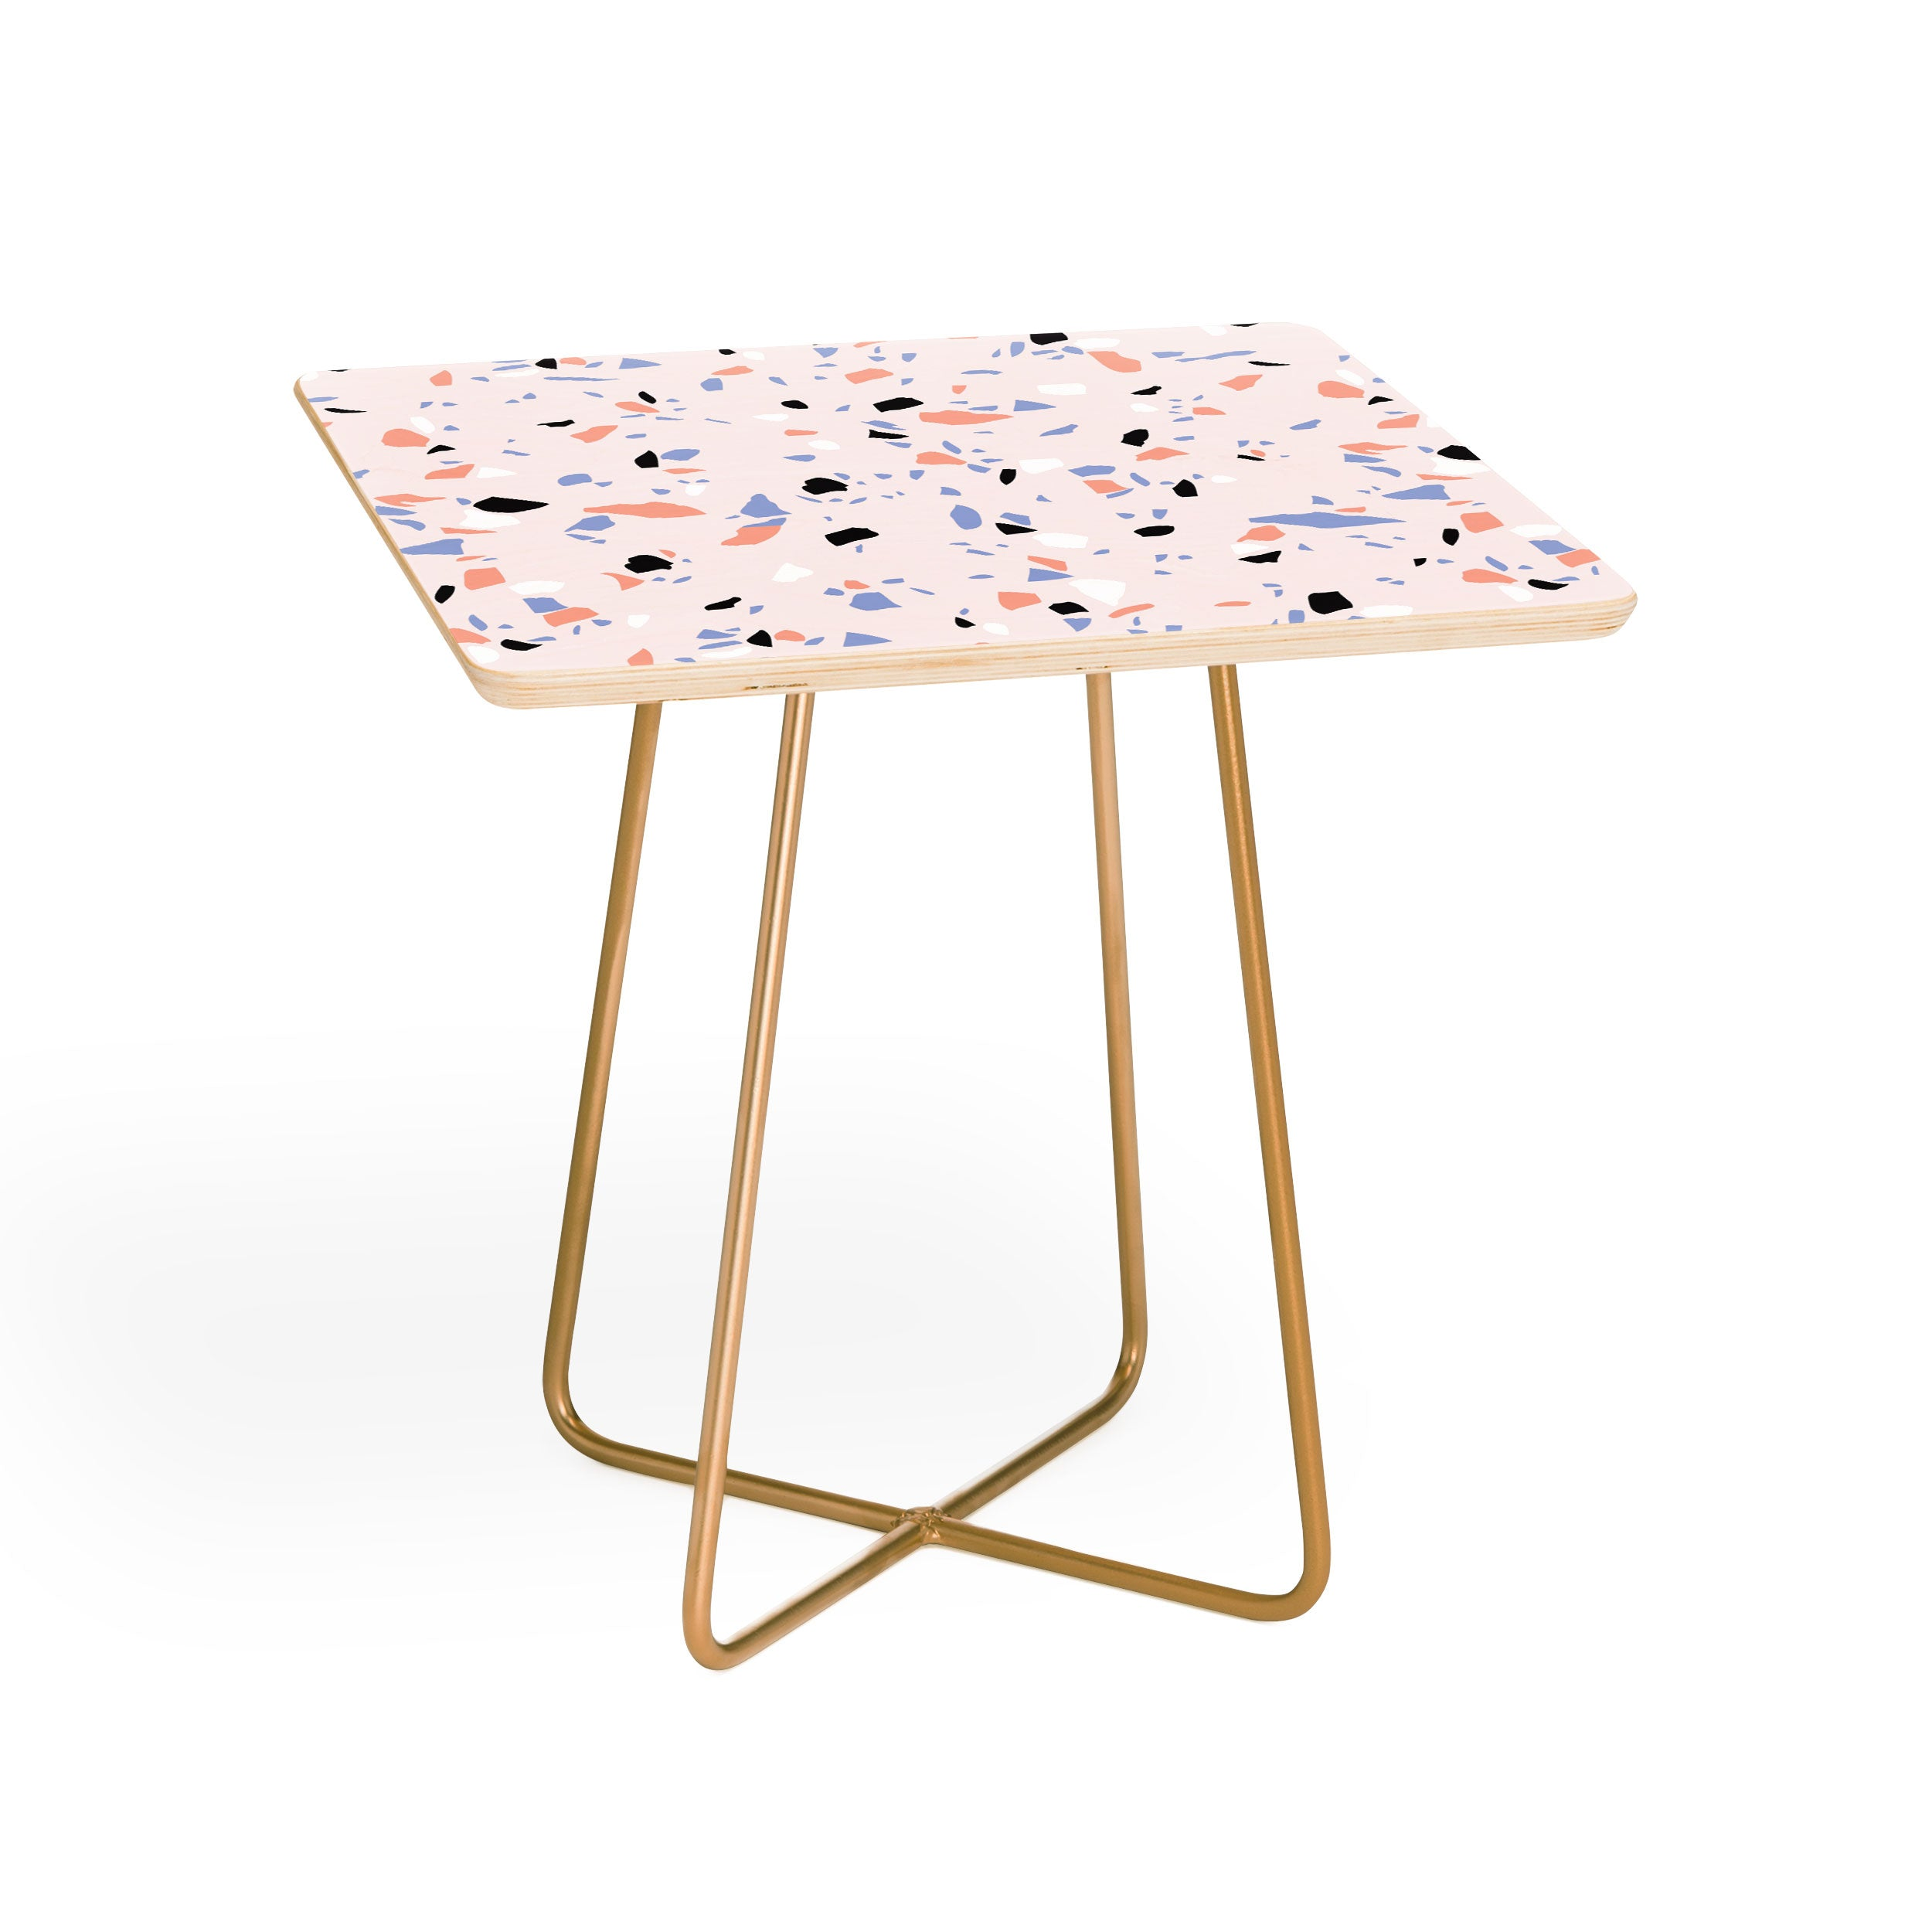 Emanuela Carratoni Sweet Terrazzo Texture Side Table